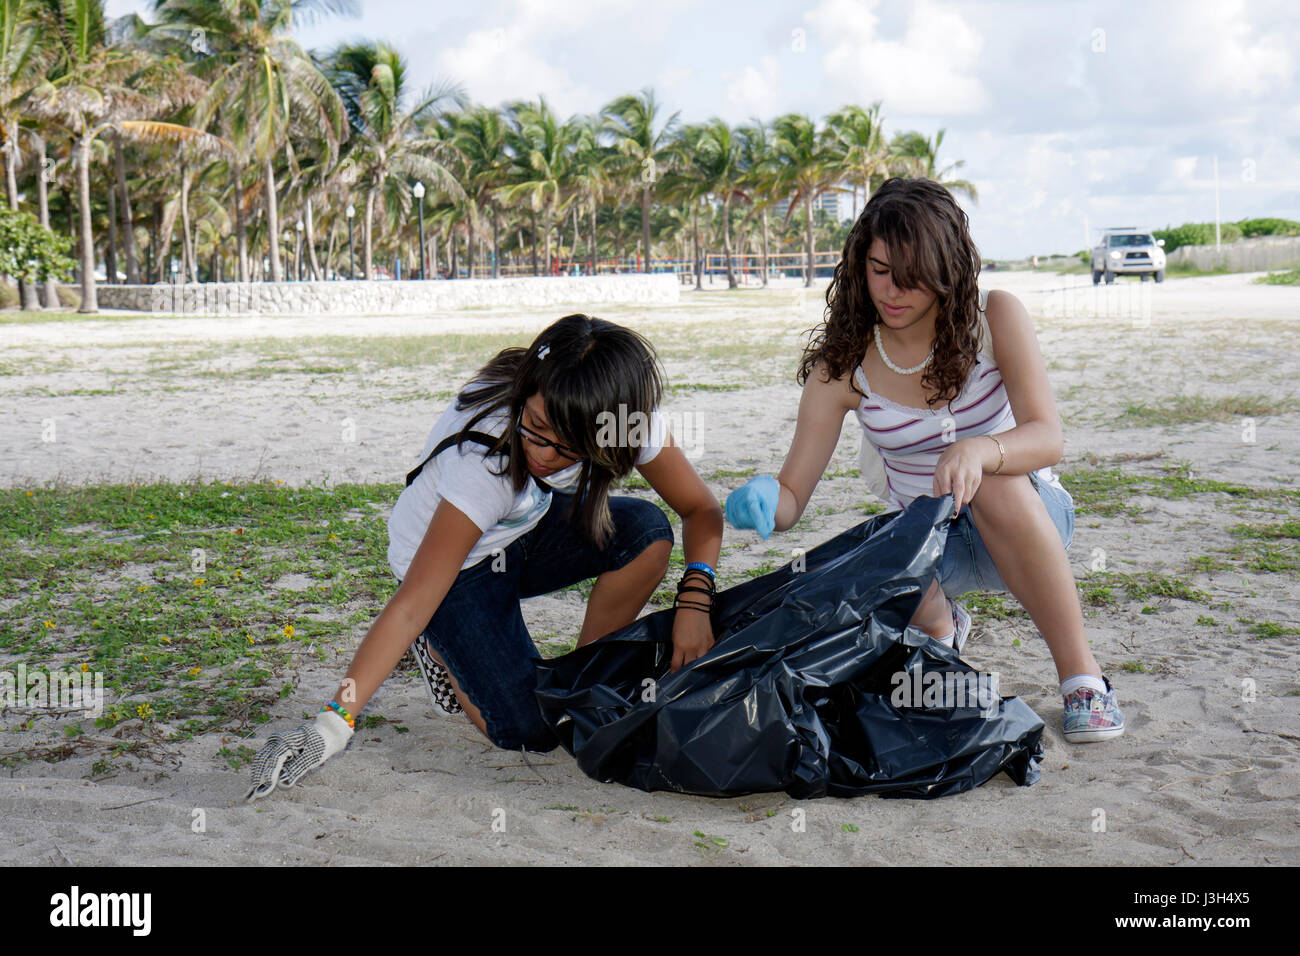 Miami Beach Florida Lummus Park International Coastal Cleanup volunteers students girls teenagers teens environment - Stock Image